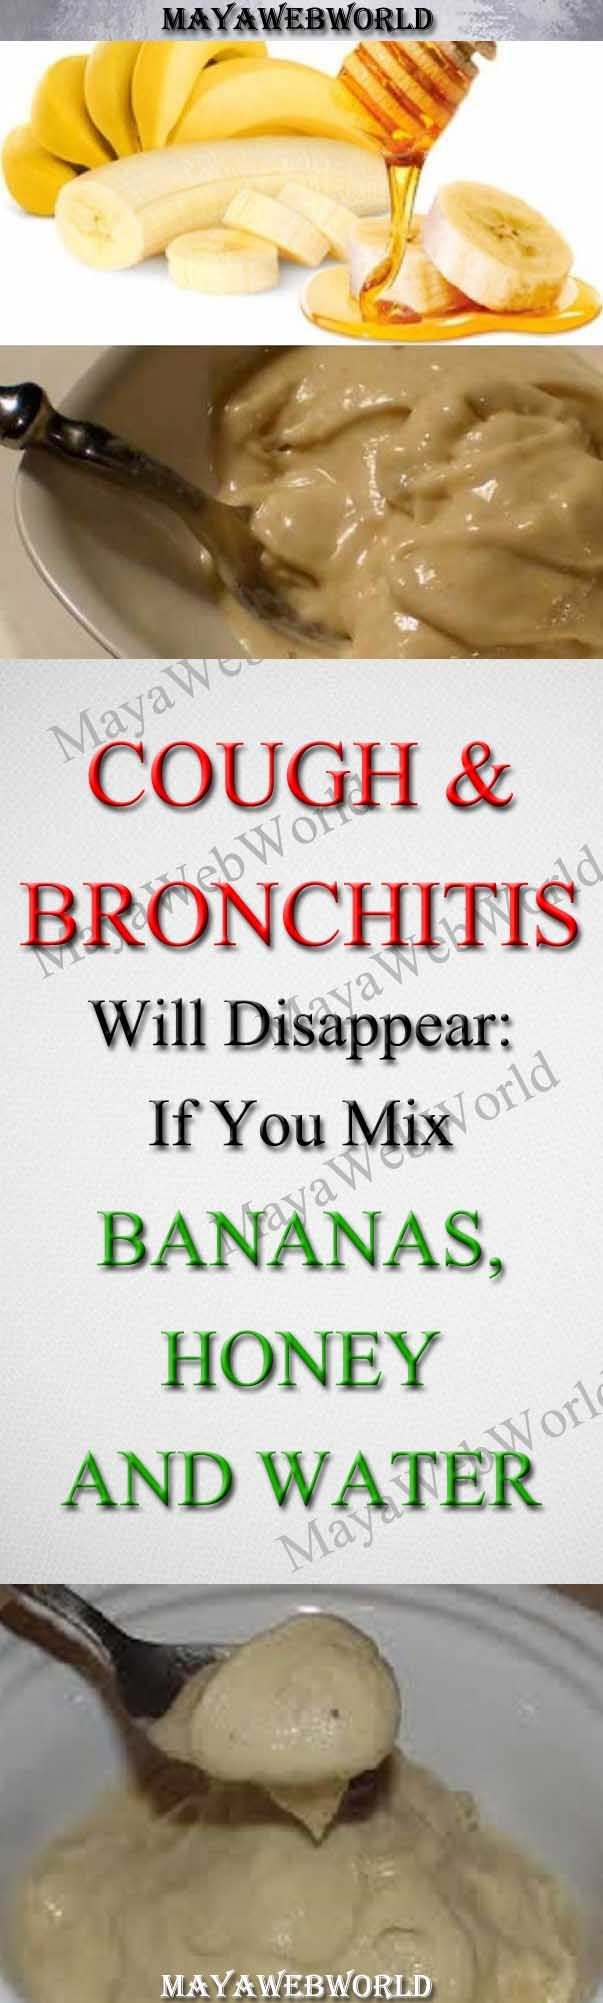 Mix Bananas, Honey and Water: Cough and Bronchitis Will Disappear – MayaWebWorld